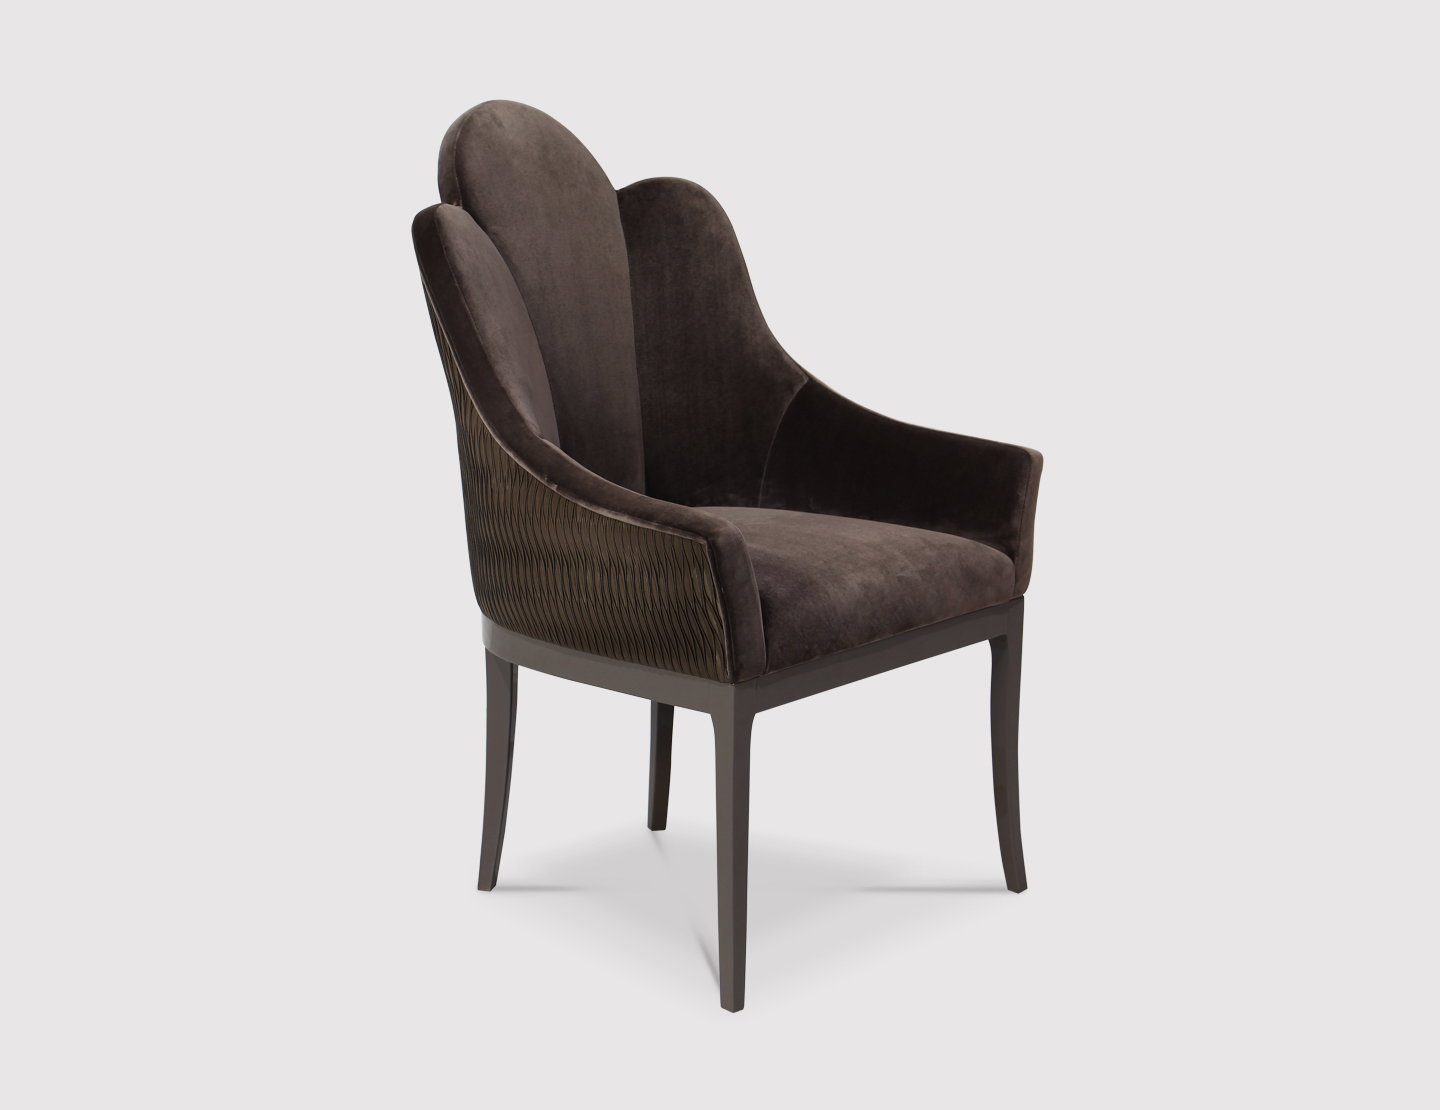 Anastasia Dining Chair By Koket